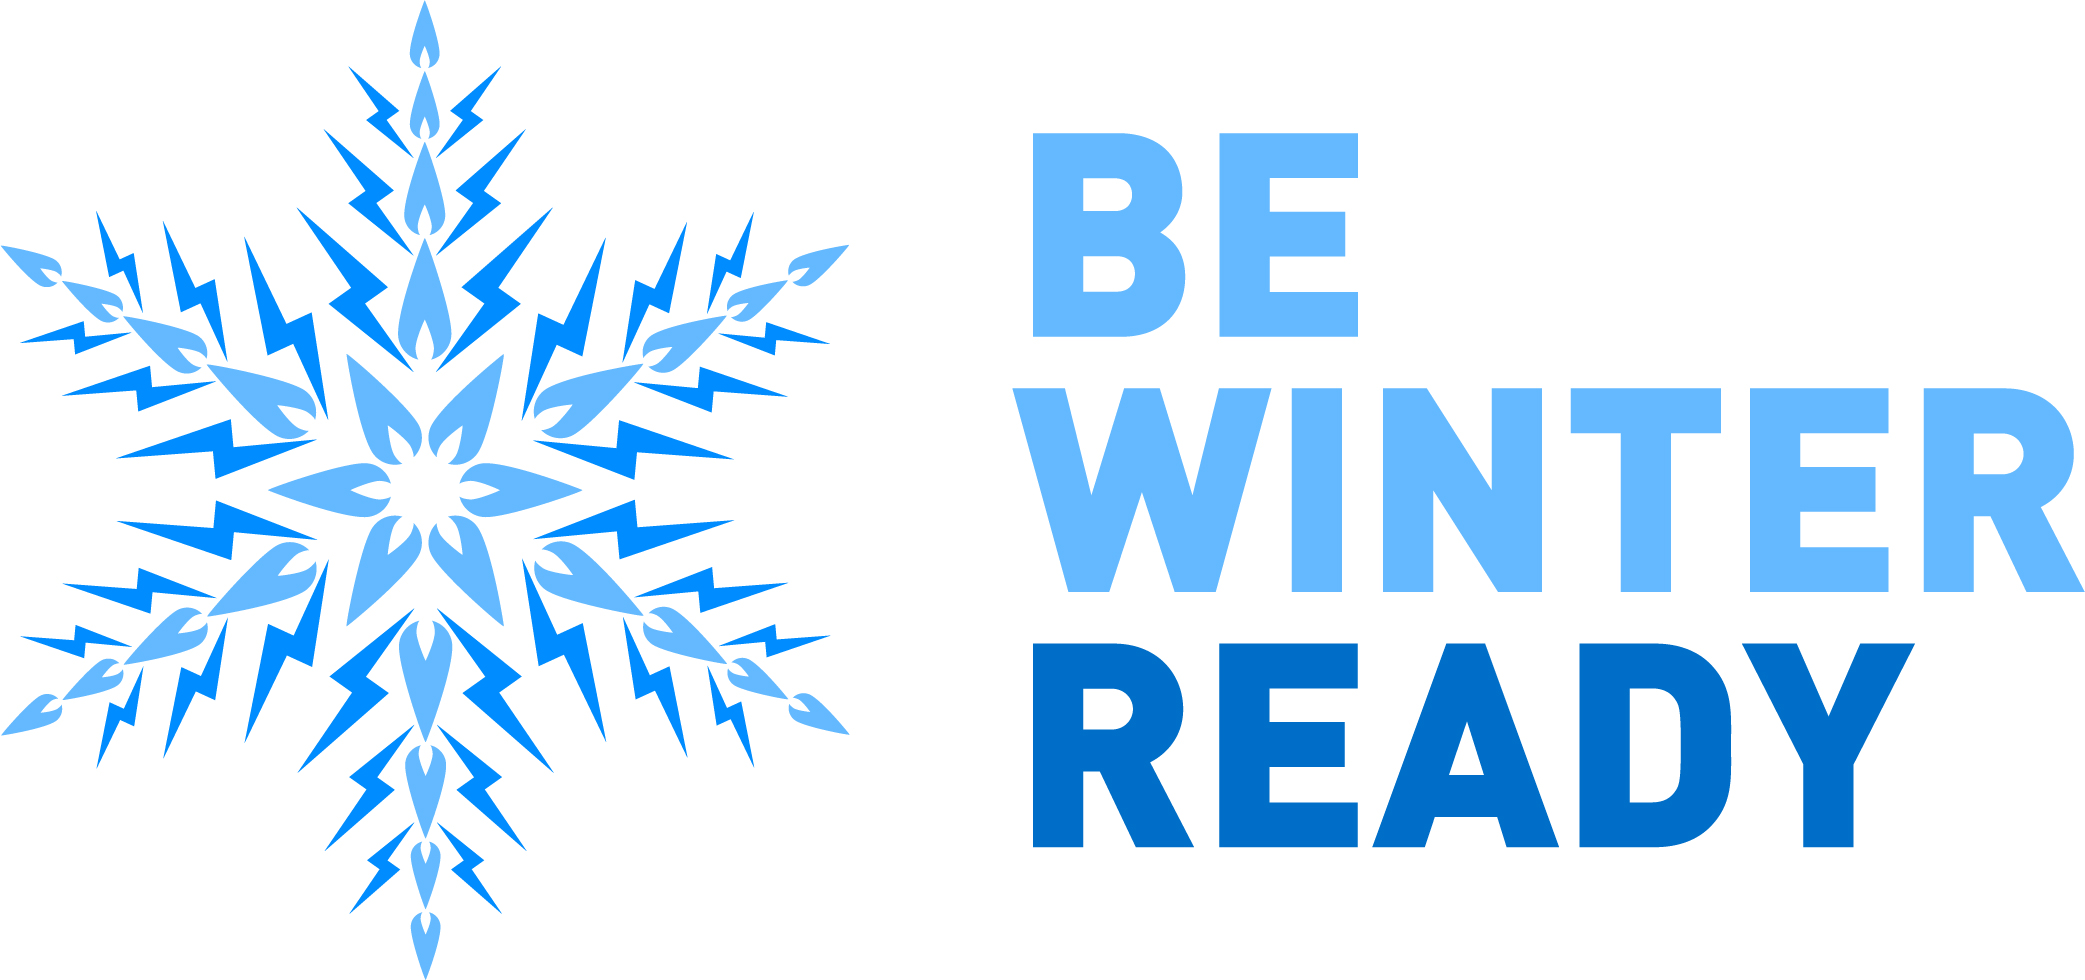 Blue star snowflake with text 'be winter ready'